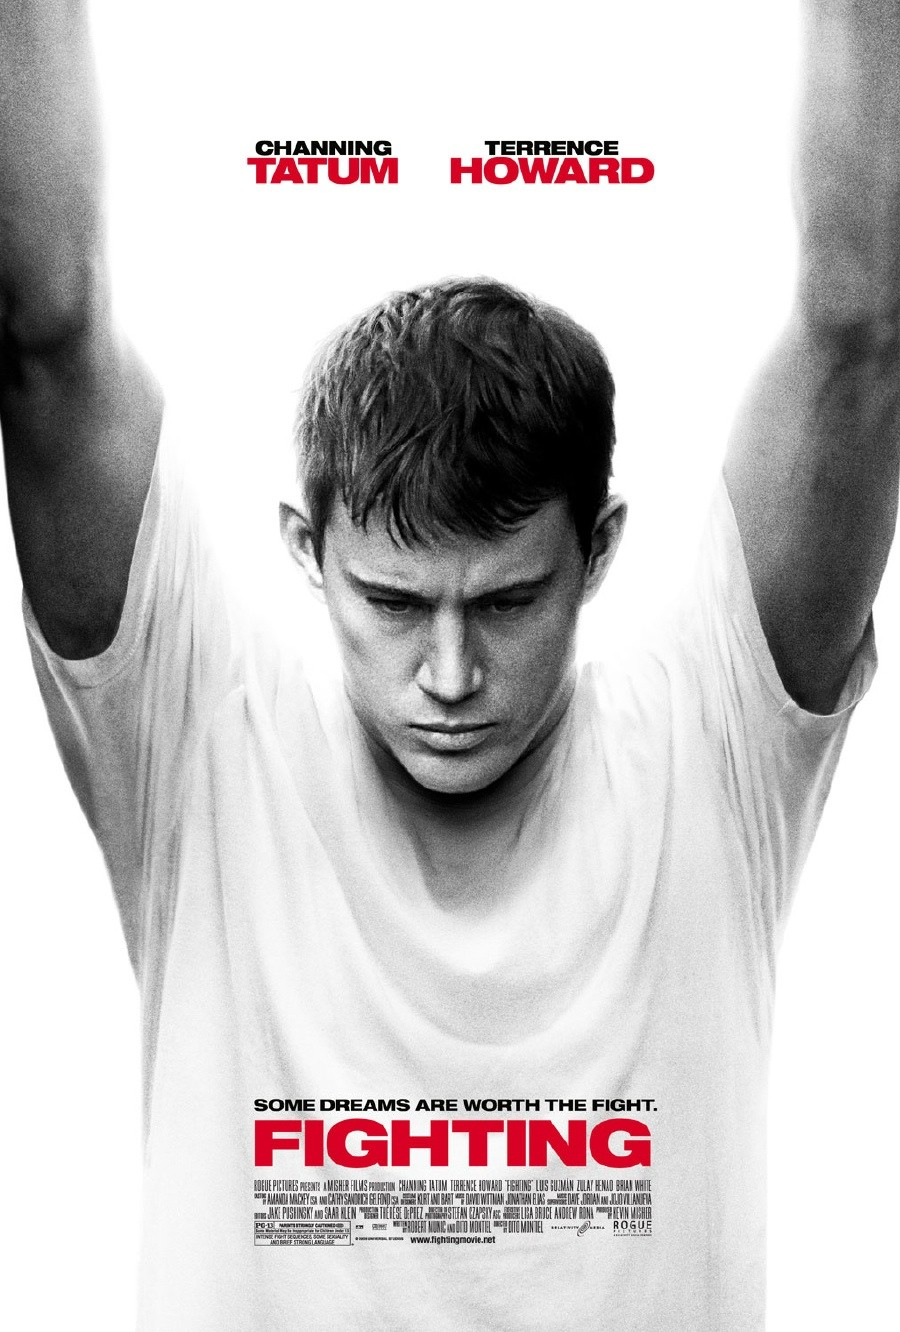 Channing tatum movies